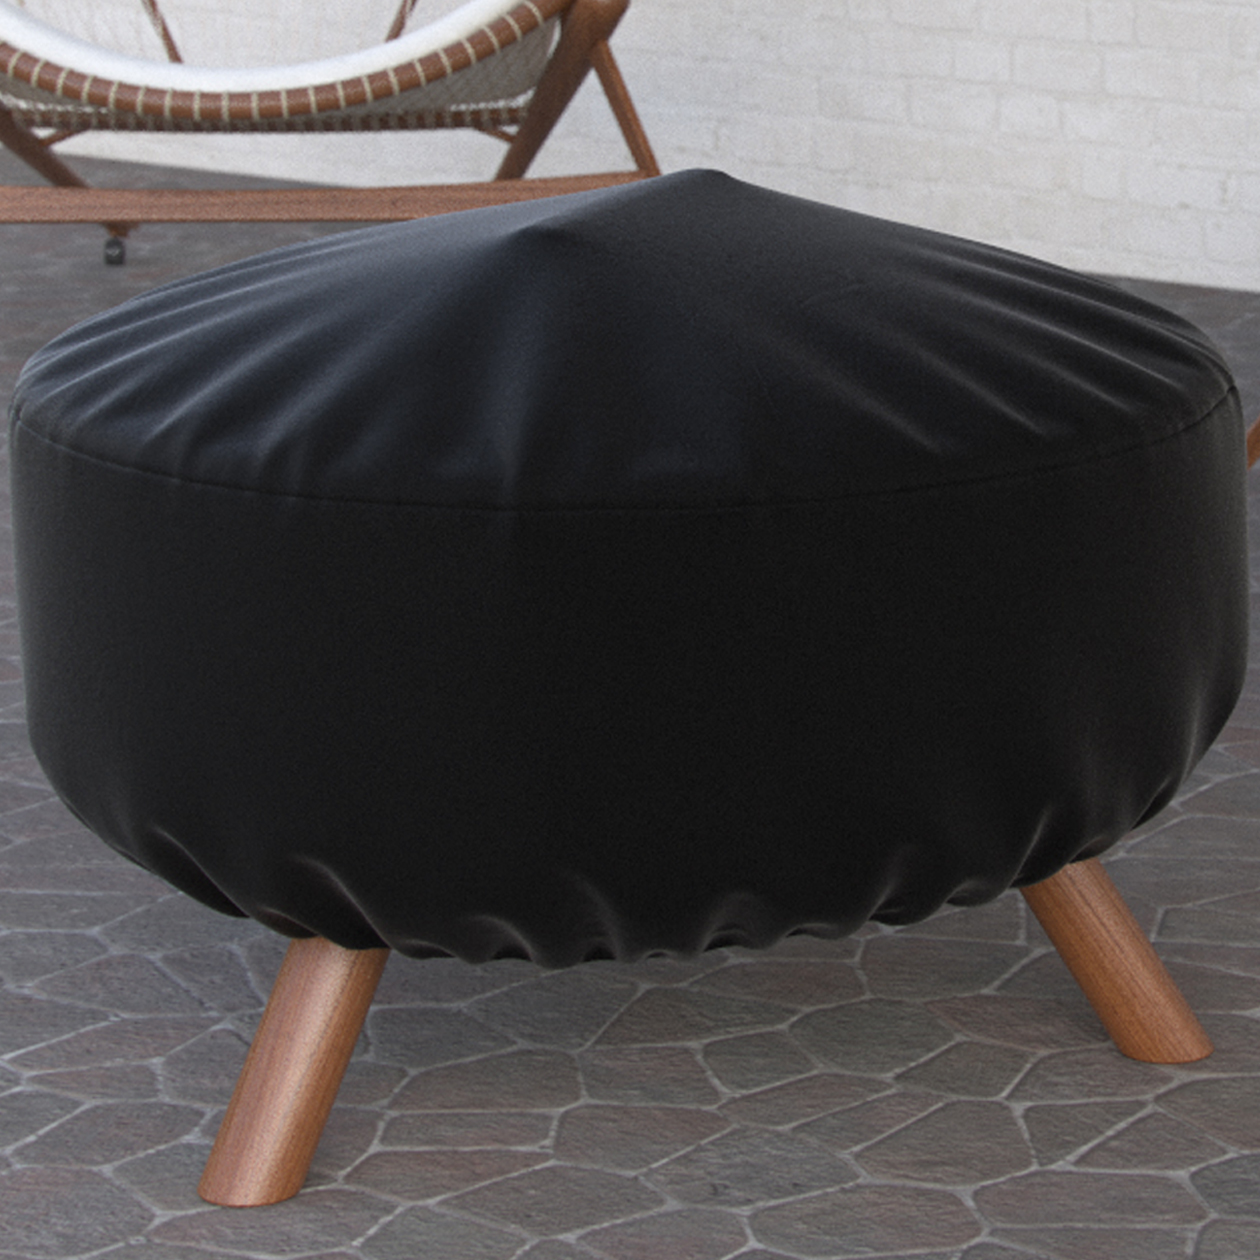 "Dura Covers Fade Proof Two Tone 44"" Heavy Duty Round Fire Pit Cover - Durable and Water Resistant Firepit Cover, Large"